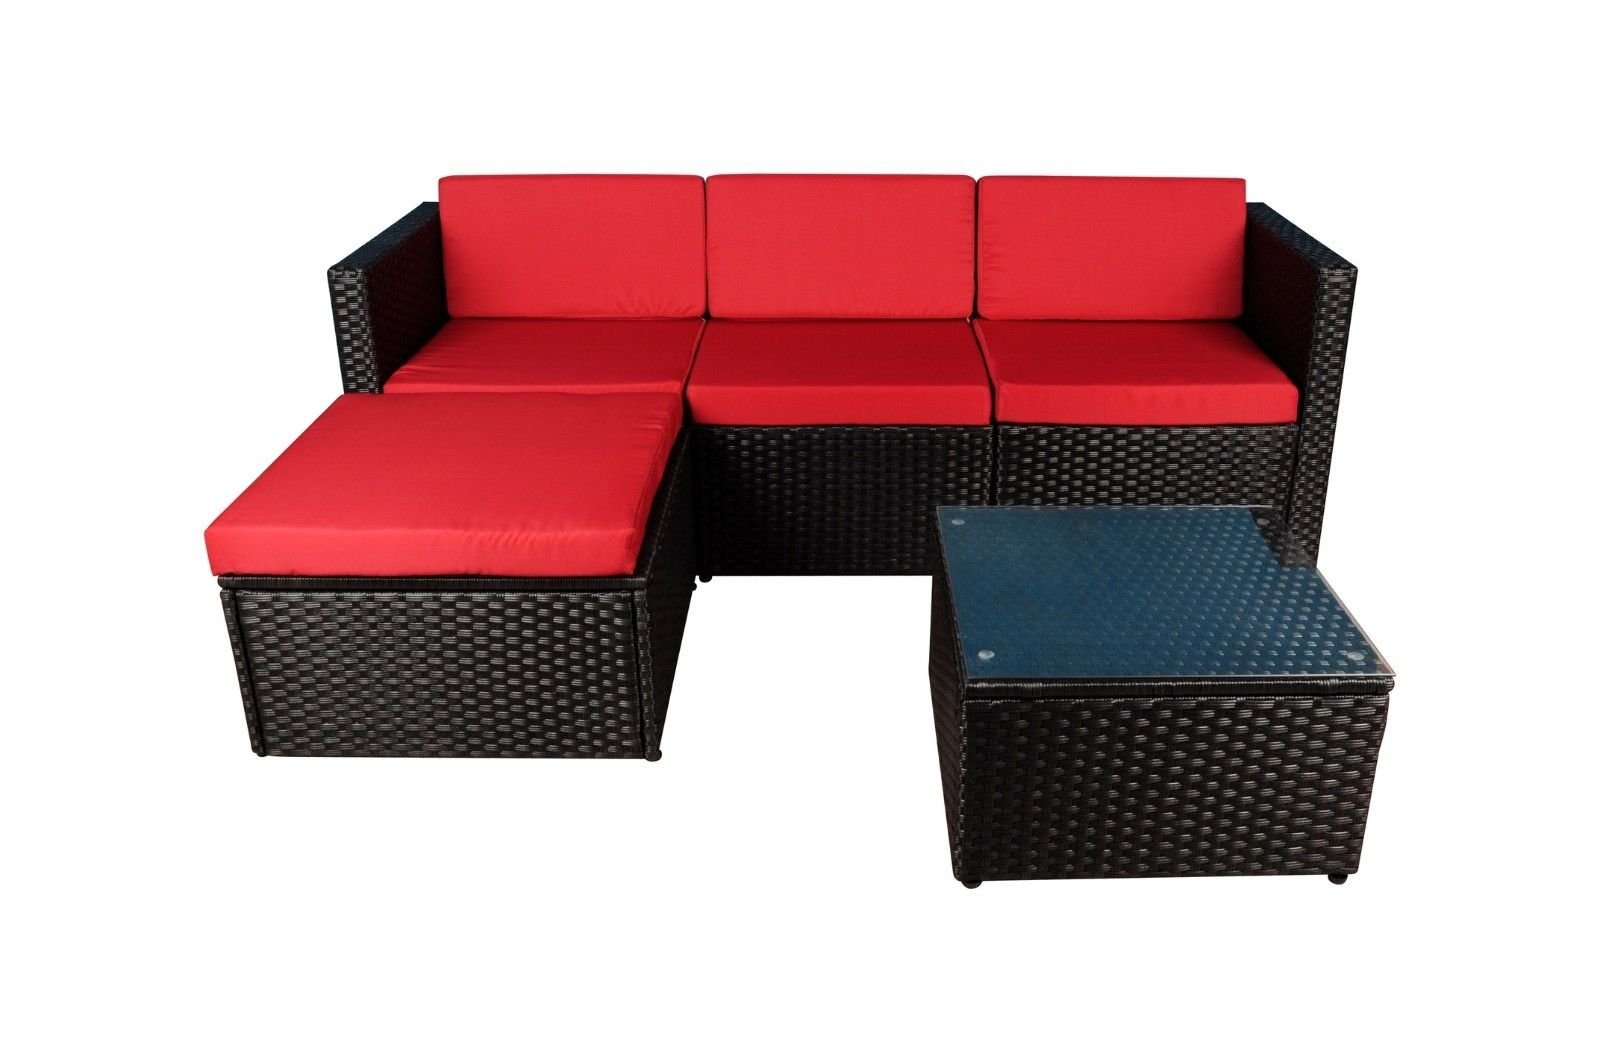 Modern Outdoor Garden Sectional Sofa Set With Coffee Table Wicker Furniture Black Red